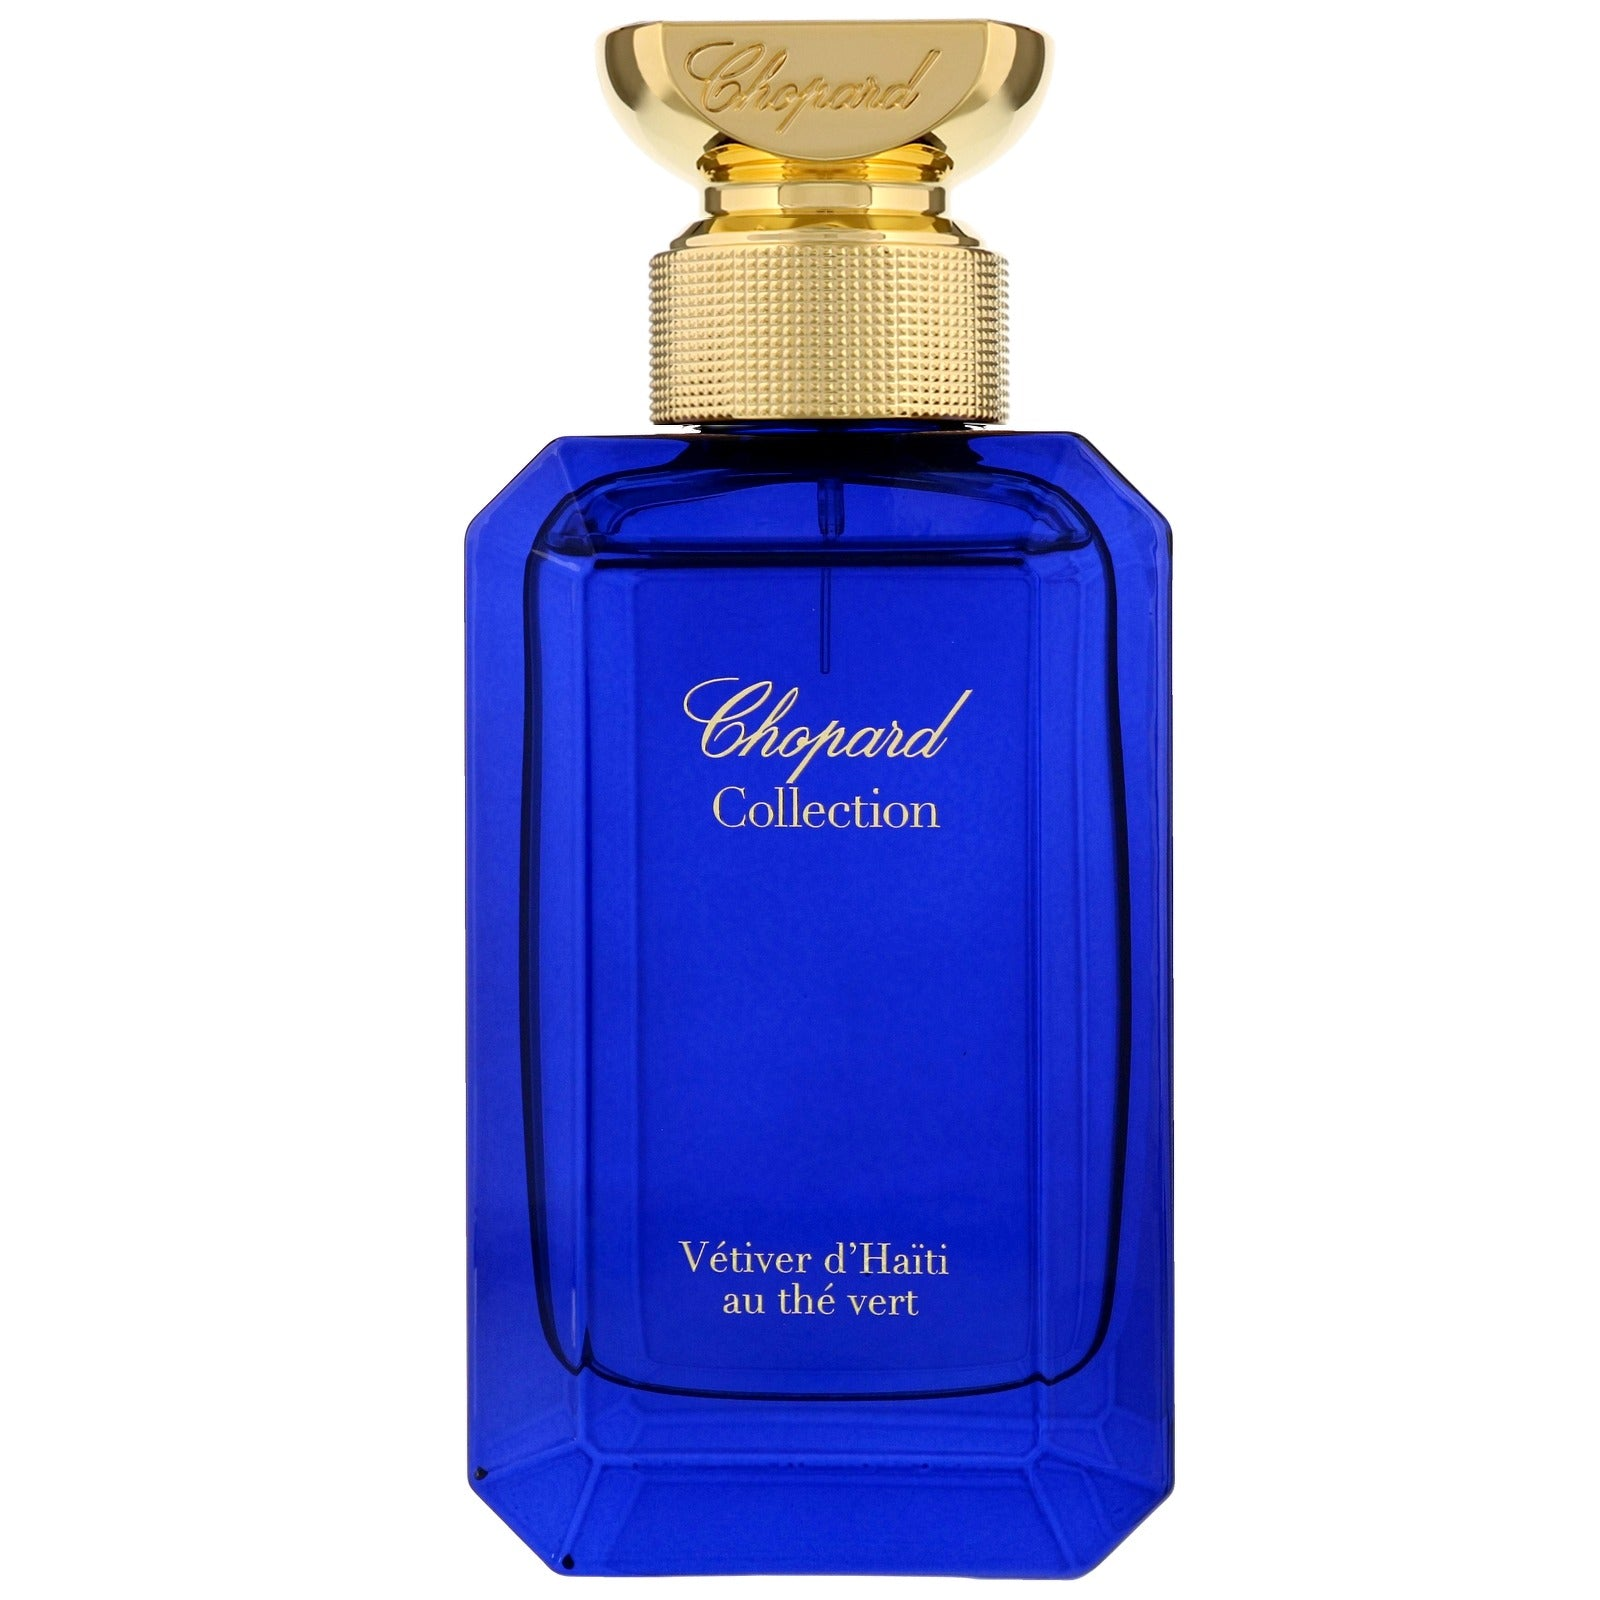 Chopard Vetiver d'Haiti au The Vert Eau de Parfum 100ml Spray